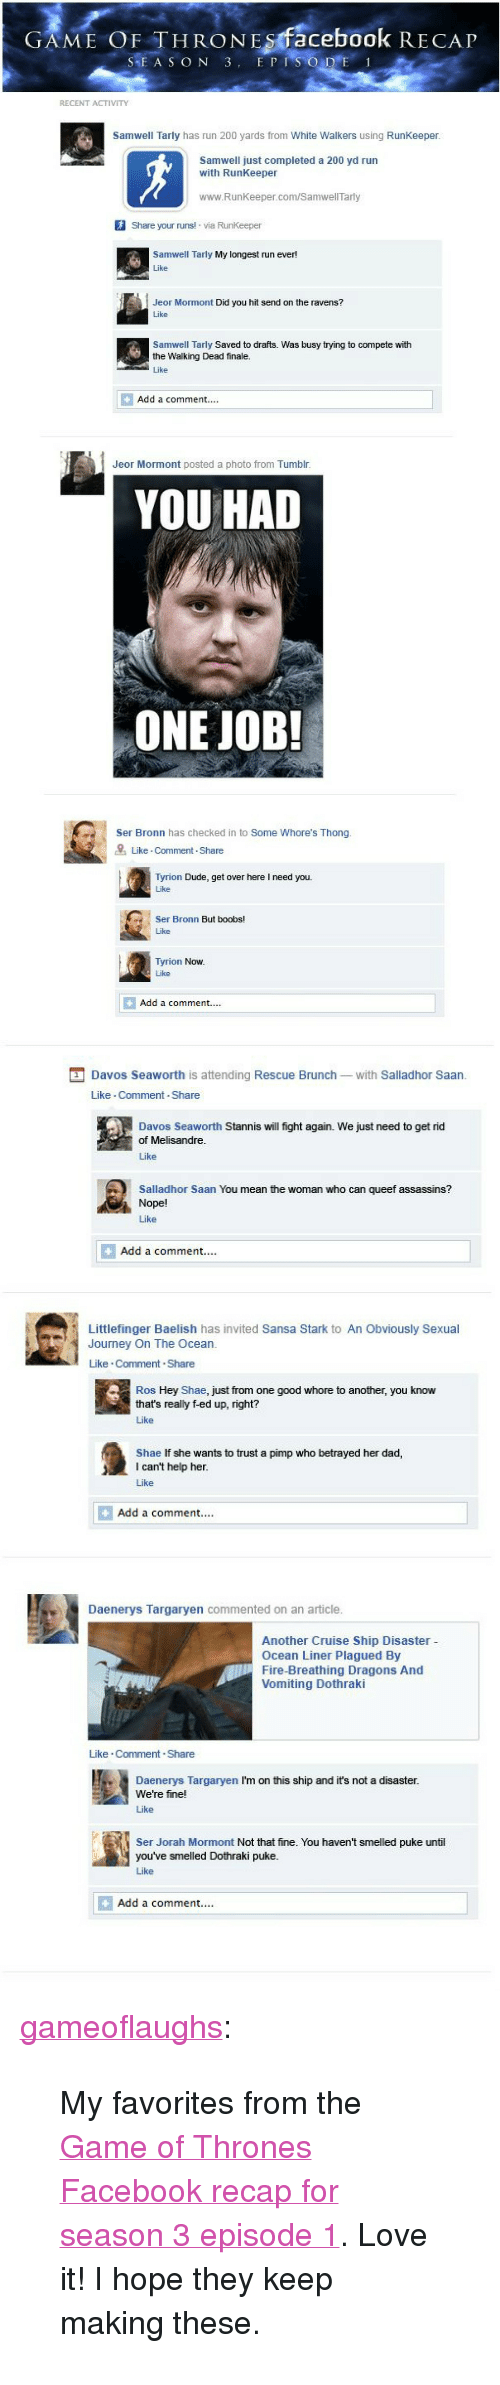 "Bailey Jay, Dad, and Dude: GAME OF THRONEs facebook RECAP  SEA S ON 3. E PI  RECENT ACTIVITY  Samwell Tarly has run 200 yards from White Walkers using RunKeeper  Samwell just completed a 200 yd run  with RunKeeper  www.RunKeeper.com/Samwell Tarly  Share your runs! via RunKeeper  Samwell Tarly My longest run ever!  Like  Jeor Mormont Did you hit send on the ravens?  Like  Samwell Tarly Saved to drafts. Was busy trying to compete with  the Walking Dead finale.  Add a comment....  Jeor Mormont posted a photo from Tumblr  YOU HAD  ONE JOB!  Ser Bronn has checked in to Some Whore's Thong  Like Comment Share  Tyrion Dude, get over here I need you.  Like  Ser Bronn But boobs!  Like  Tyrion Now  Like  Add a comment....   Davos Seaworth is attending Rescue Brunch-with Salladhor Saan  Like Comment Share  Davos Seaworth Stannis will fight again. We just need to get rid  of Melisandre  Like  Salladhor Saan You mean the woman who can queef assassins?  Nope!  Like  Add a comment.  Littlefinger Baelish has invited Sansa Stark to An Obviously Sexual  Journey On The Ocean  Like Comment.Share  Ros Hey Shae, just from one good whore to another, you know  that's really f-ed up, right?  Like  Shae If she wants to trust a pimp who betrayed her dad,  I can't help her  Like  Add a comment...  Daenerys Targaryen commented on an article  Another Cruise Ship Disaster -  Ocean Liner Plagued By  Fire-Breathing Dragons And  Vomiting Dothraki  Like Comment-Share  Daenerys Targaryen I'm on this ship and it's not a disaster  We're fine!  Like  Ser Jorah Mormont Not that fine. You haven't smelled puke until  you've smelled Dothraki puke  Like  Add a comment.... <p><a class=""tumblr_blog"" href=""http://gameoflaughs.tumblr.com/post/47800967525/if-game-of-thrones-season-3-episode-1-were-on-facebook"">gameoflaughs</a>:</p> <blockquote> <p>My favorites from the <a href=""http://www.happyplace.com/22775/game-of-thrones-facebook-recap-season-3-episode-1"">Game of Thrones Facebook recap for season 3 episode 1</a>. Love it! I hope they keep making these.</p> </blockquote>"